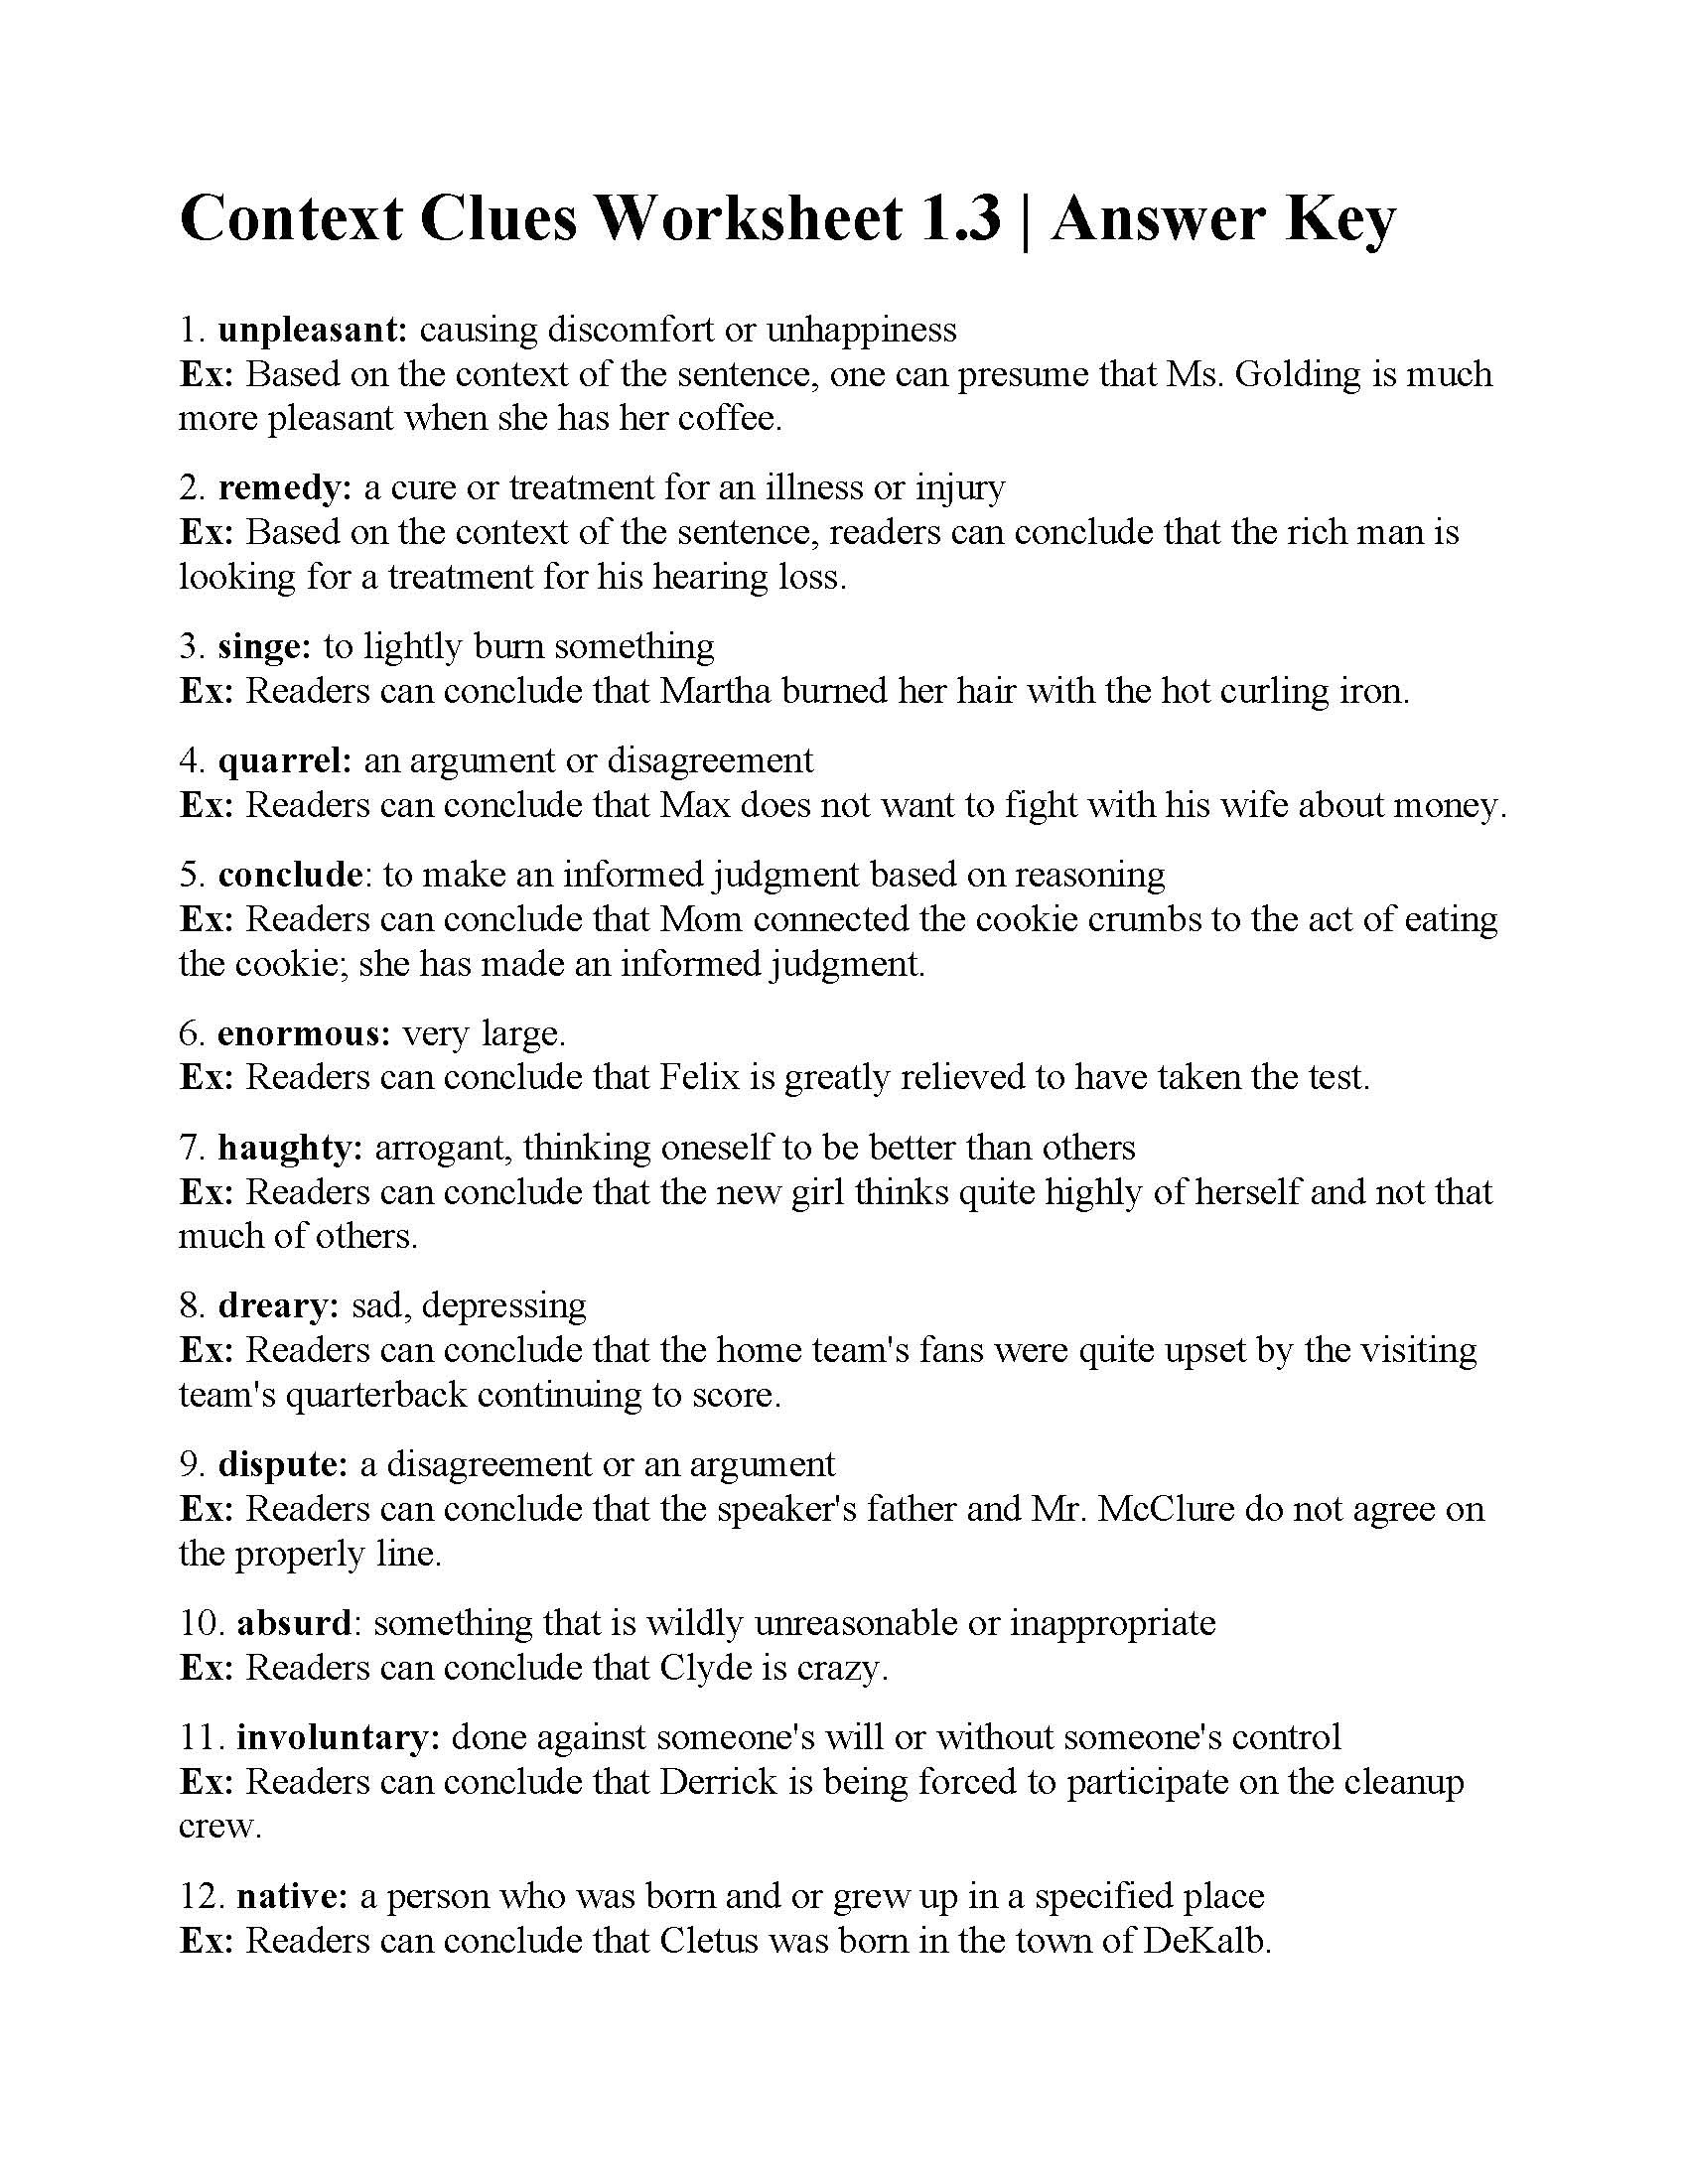 Context Clues Worksheets 1st Grade Free touch Math Worksheets Math Worksheets Double Digit